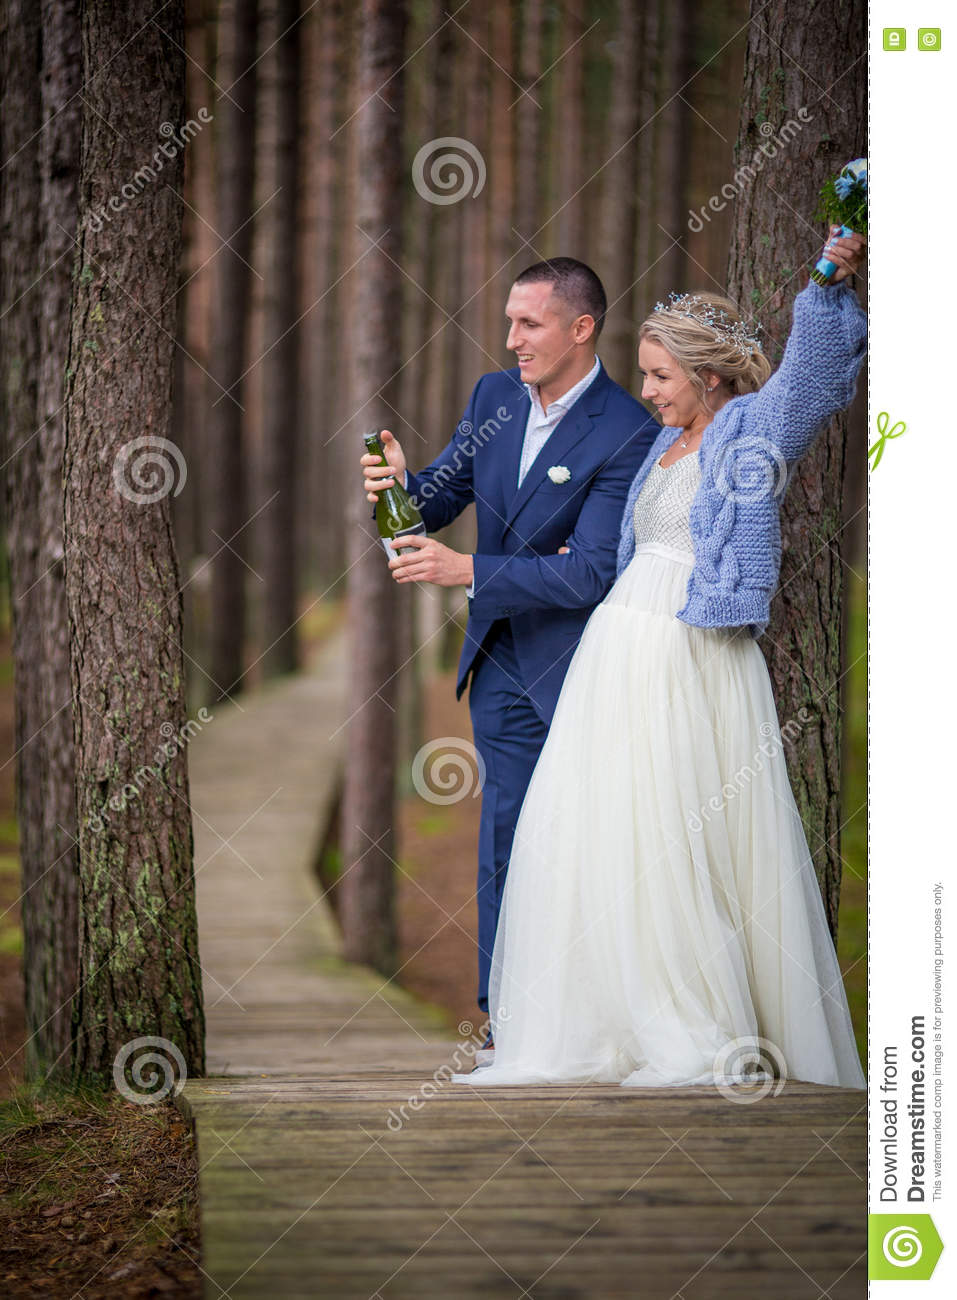 Groom openning the champagne at wedding day